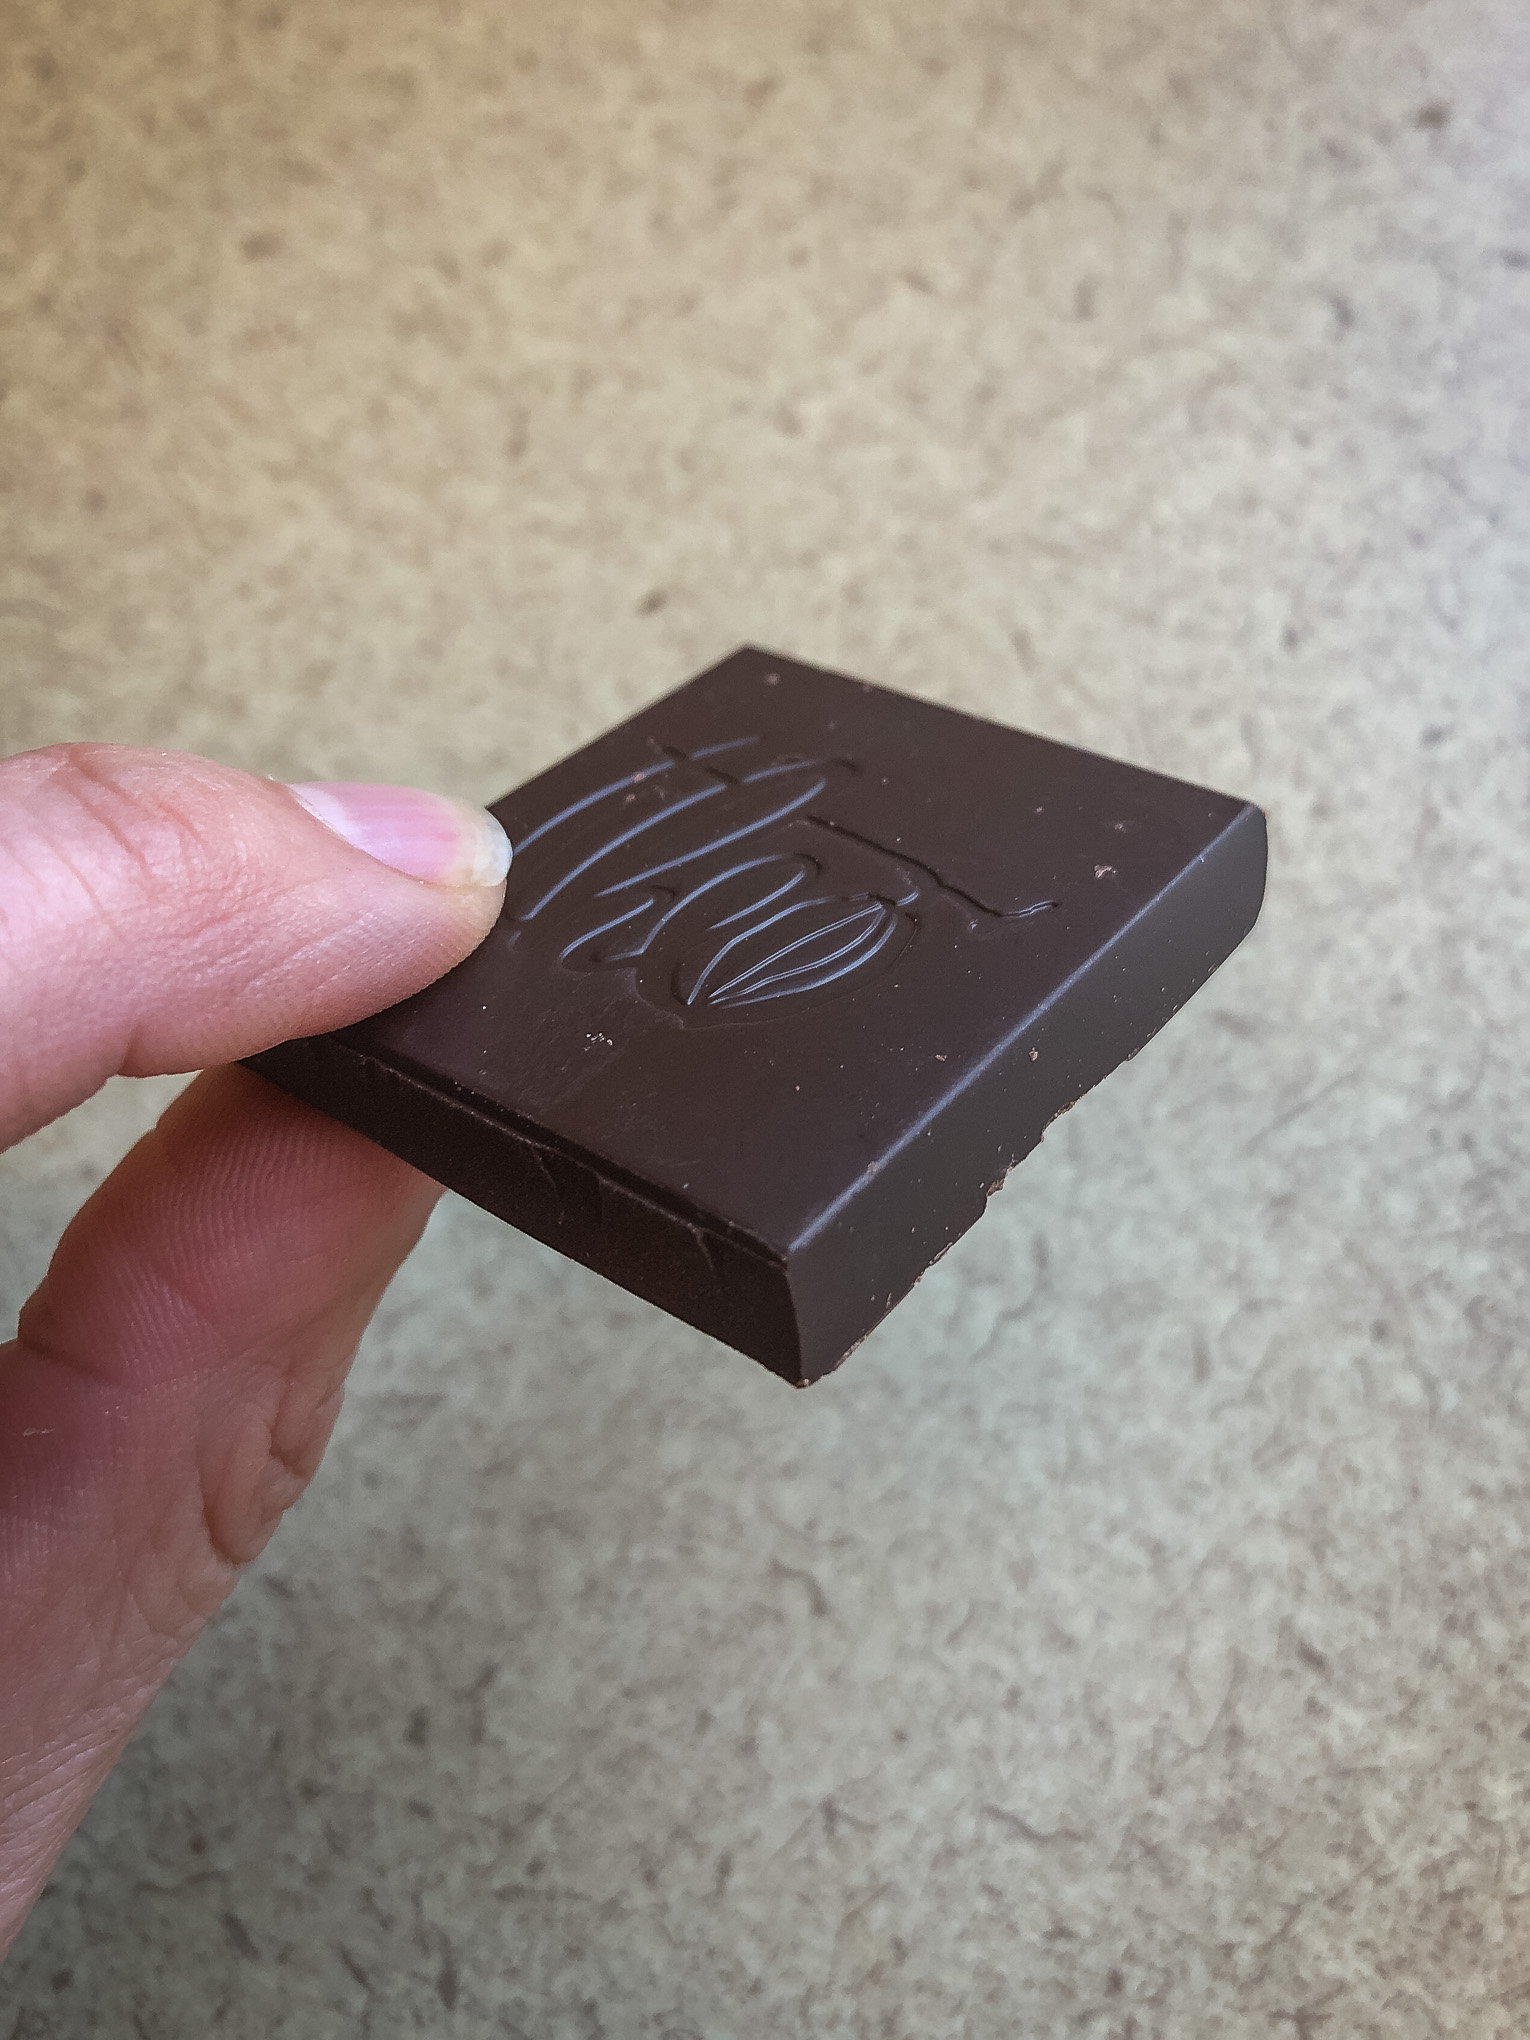 Fingers holding a piece of dark chocolate